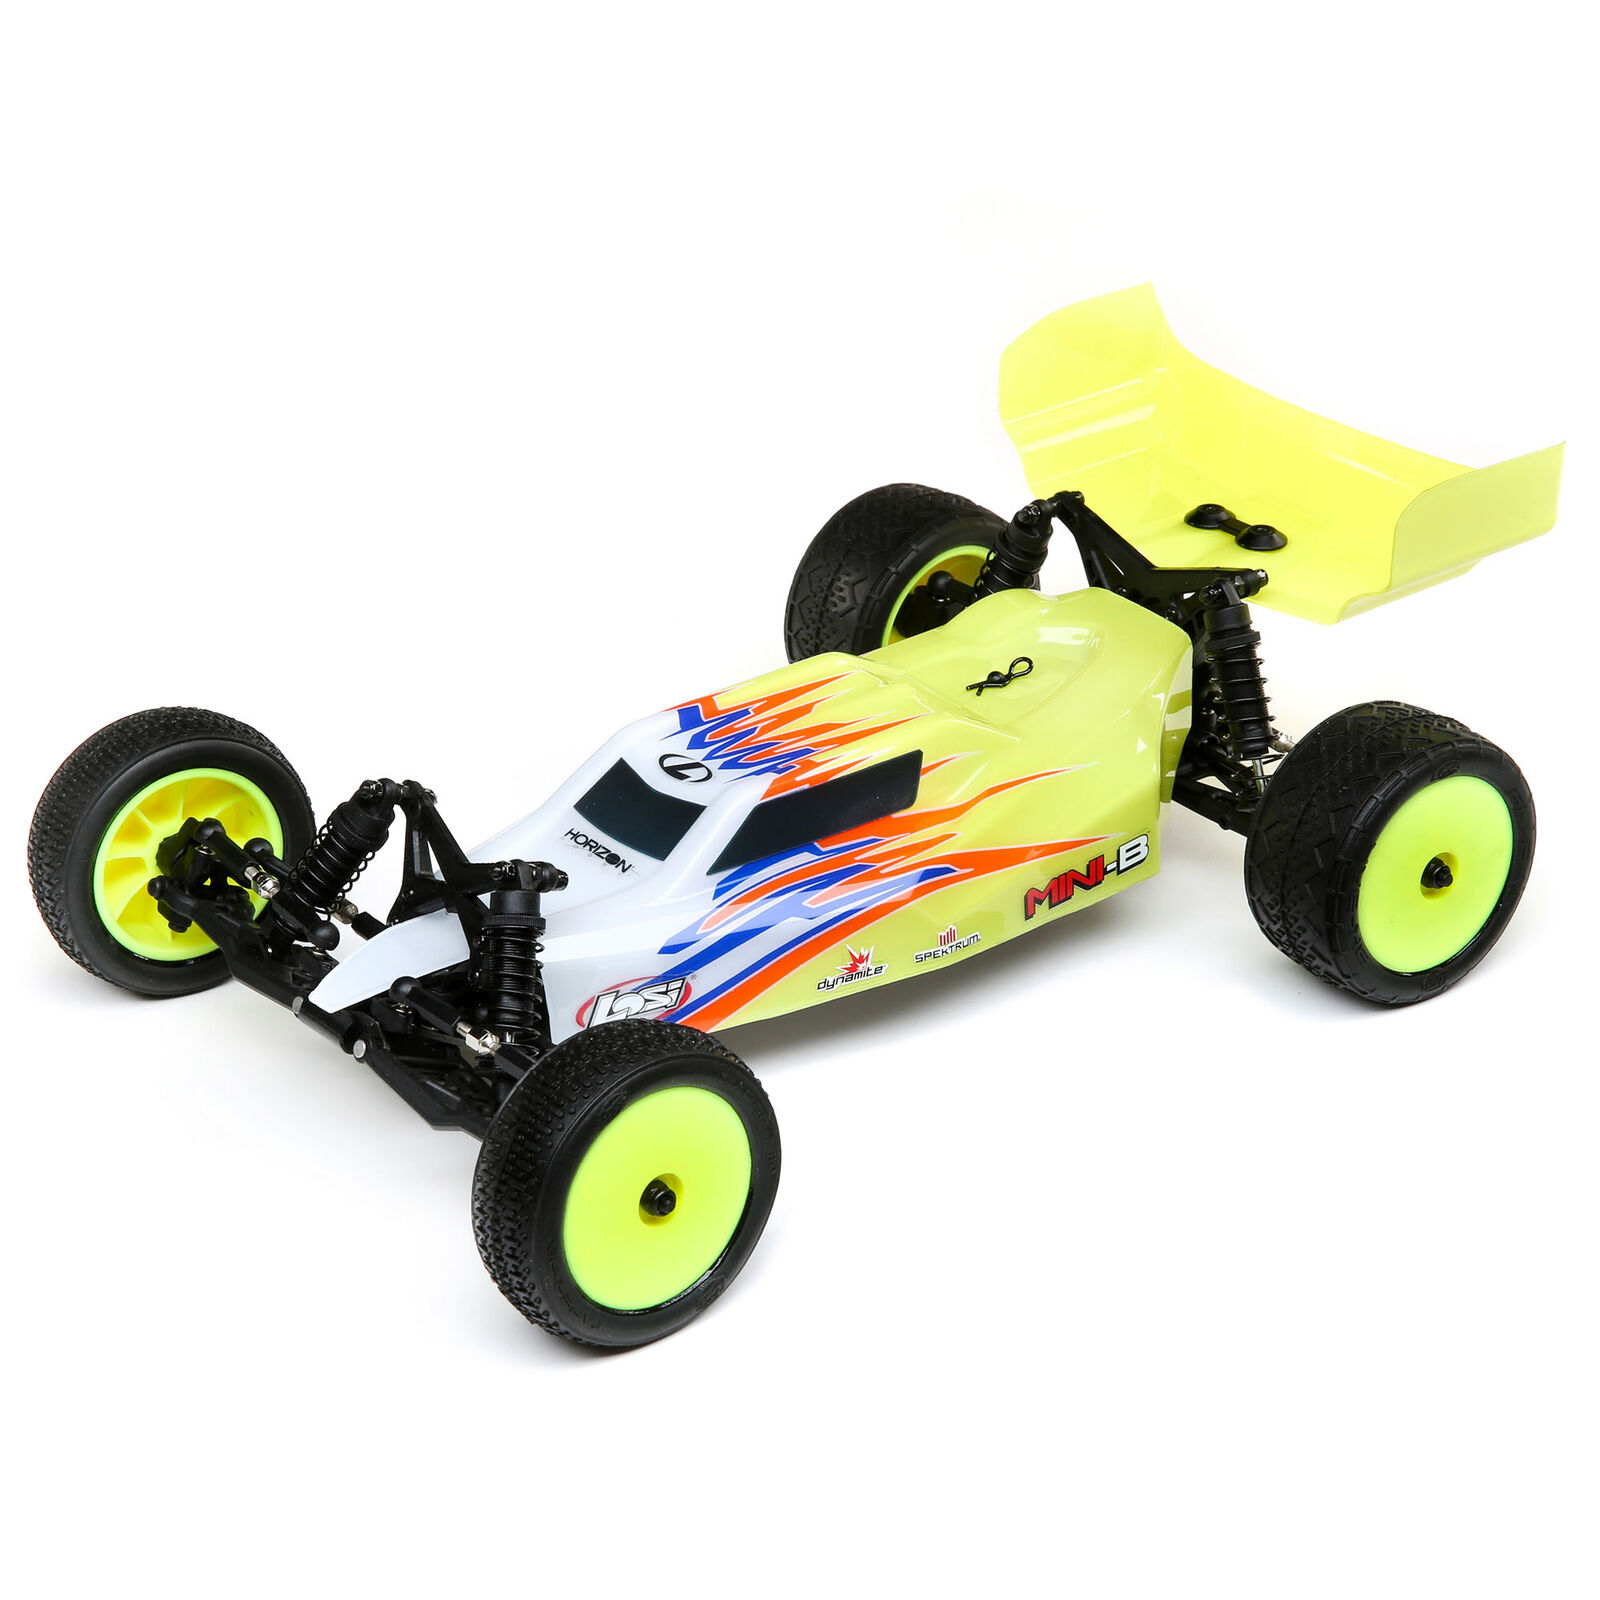 1/16 Mini-B Brushed RTR 2WD Buggy, Yellow/White